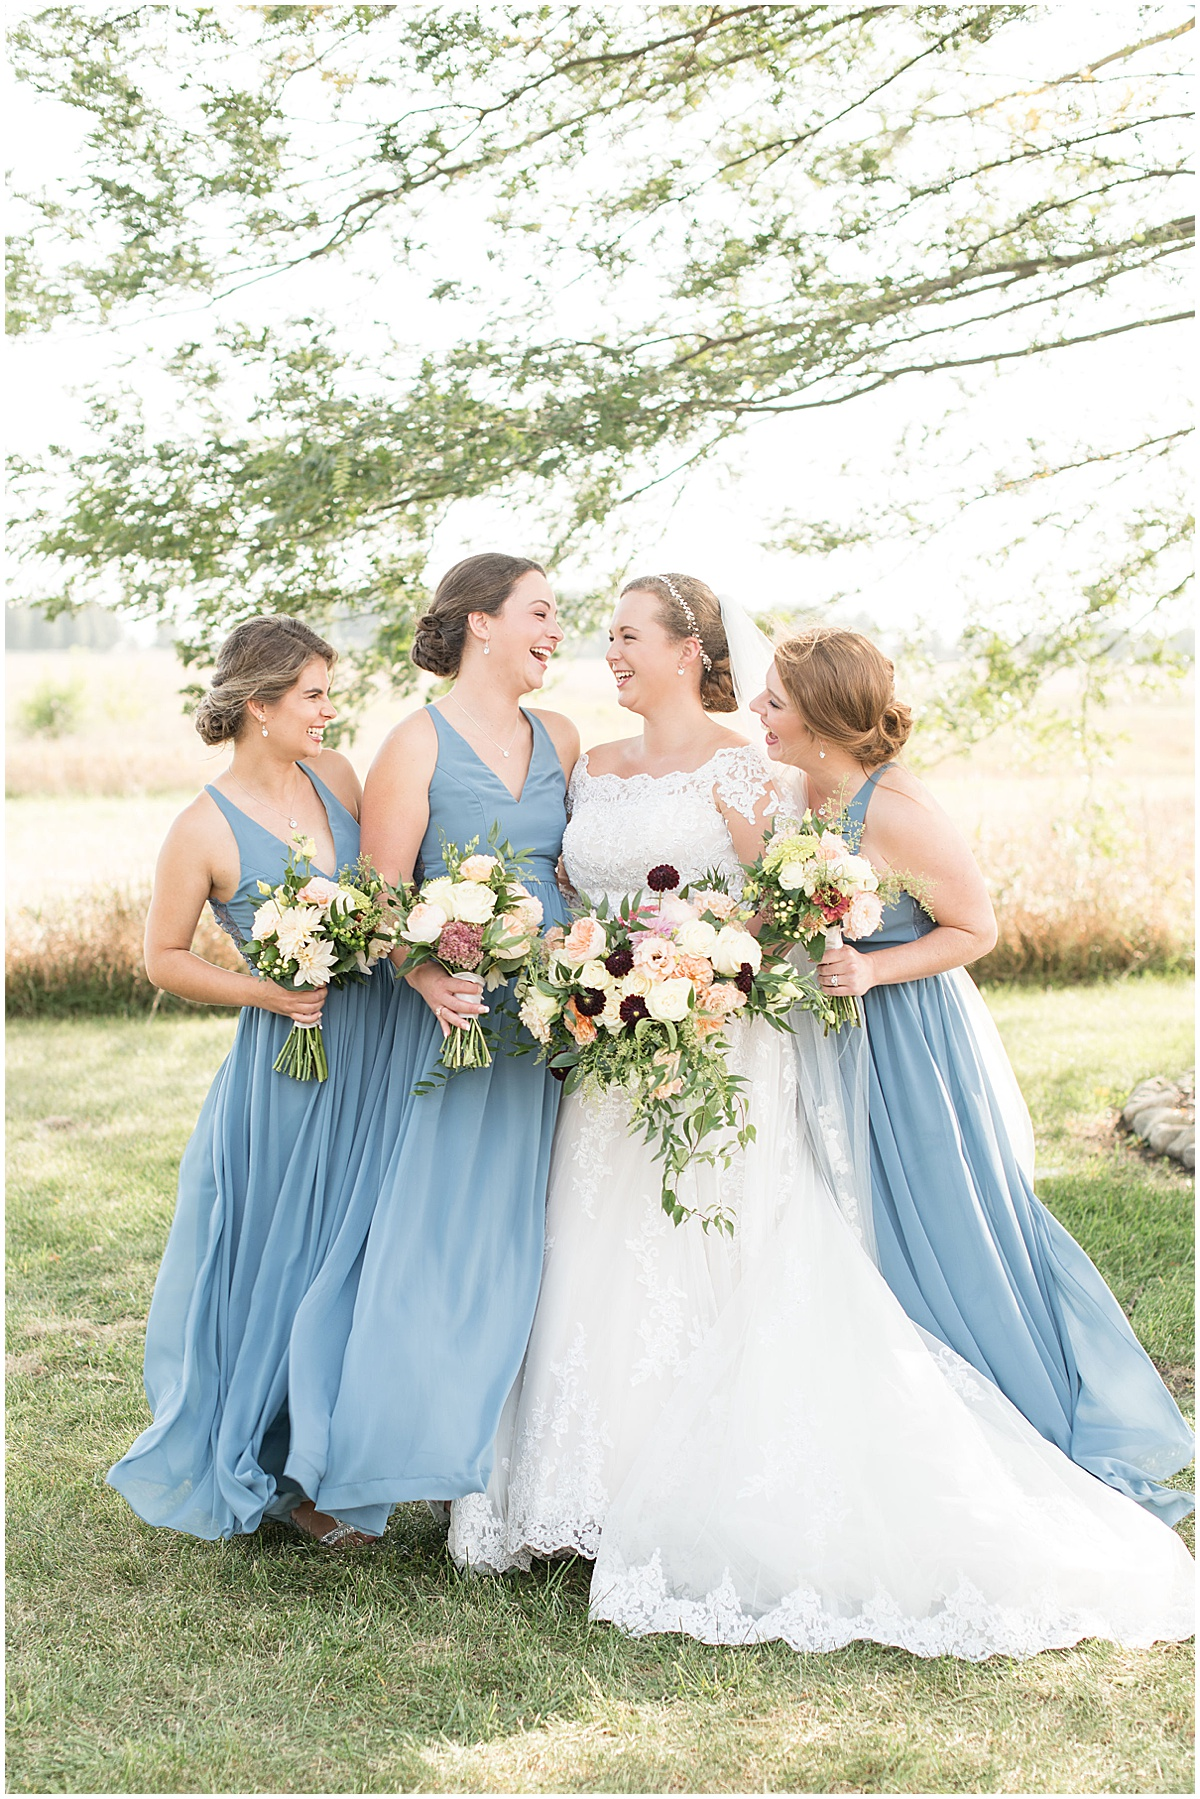 Bridesmaids ready for Meadow Springs Manor wedding in Francesville, Indiana by Victoria Rayburn Photography